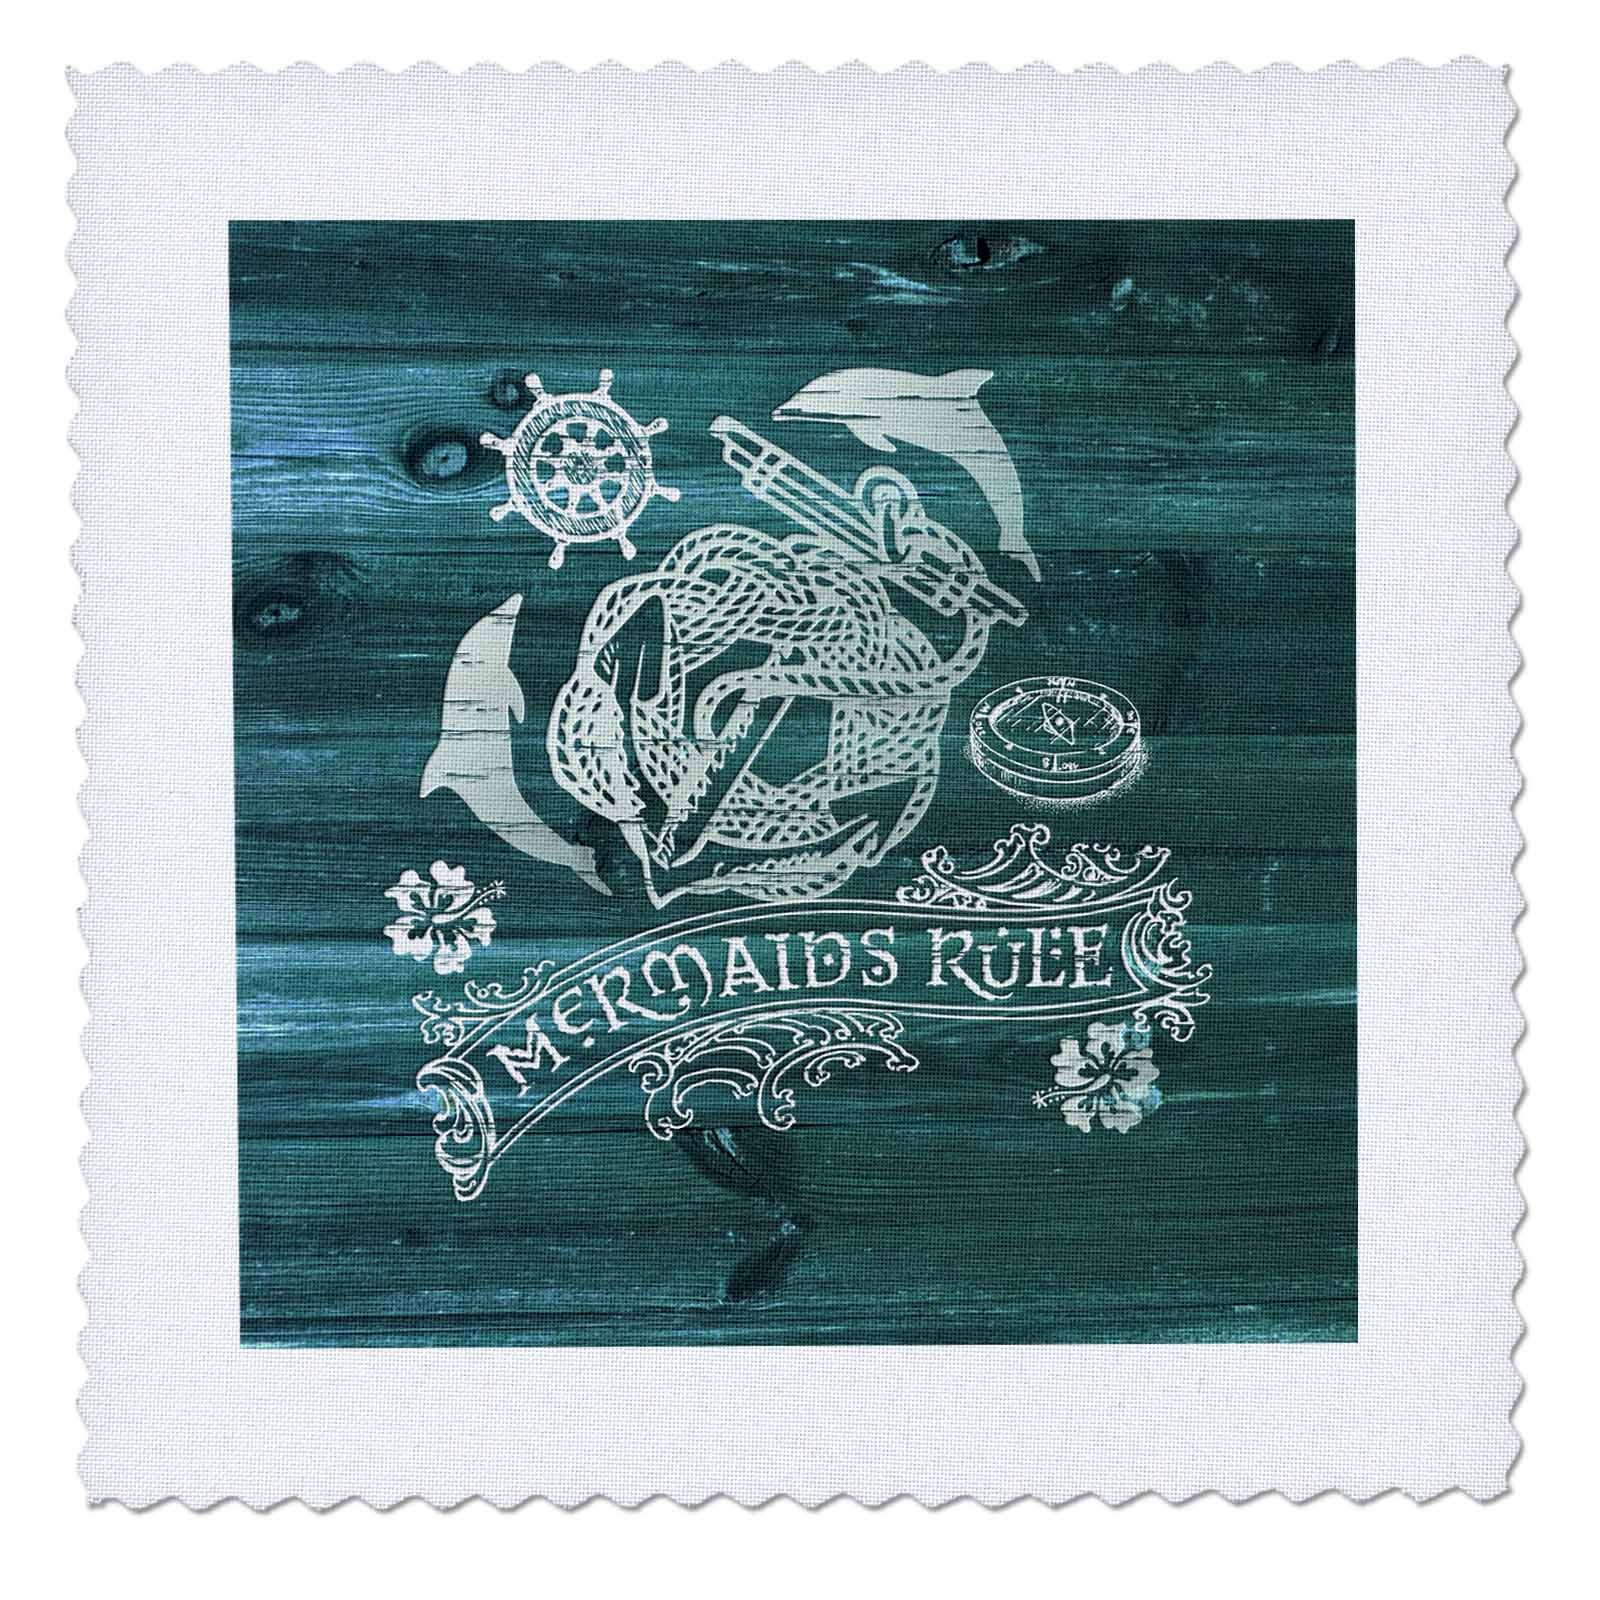 3dRose Russ Billington Nautical Designs - Mermaids Rule- White Anchor Design on Blue Weatherboard- not real wood - 22x22 inch quilt square (qs_262165_9)